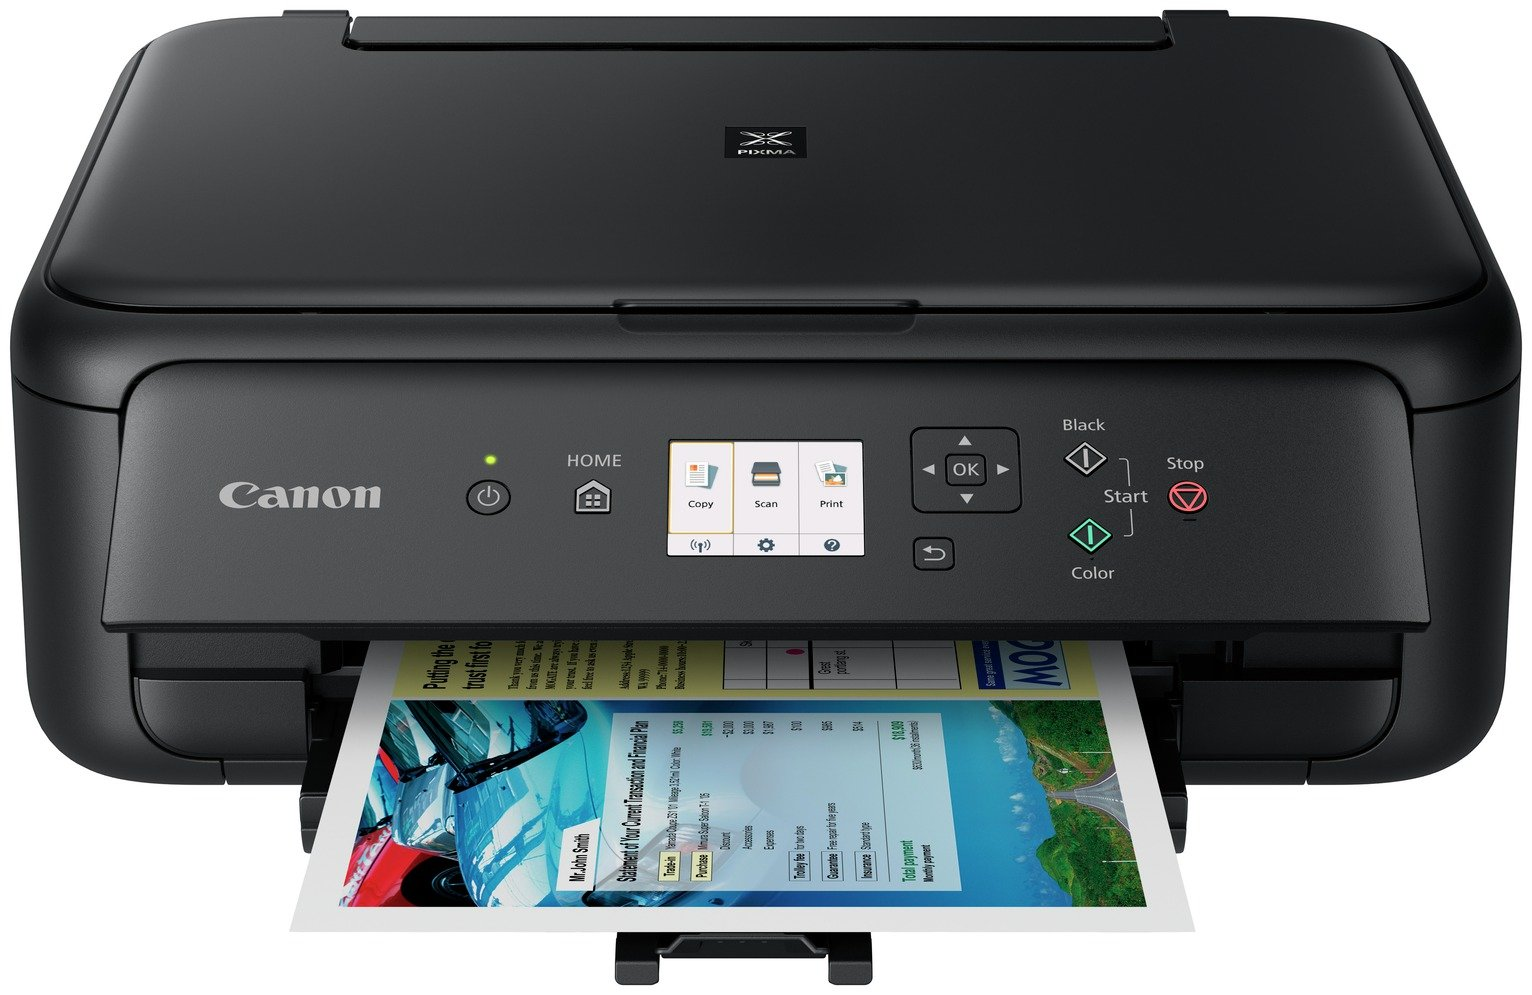 Canon PIXMA TS5150 Wireless Inkjet Printer from Canon